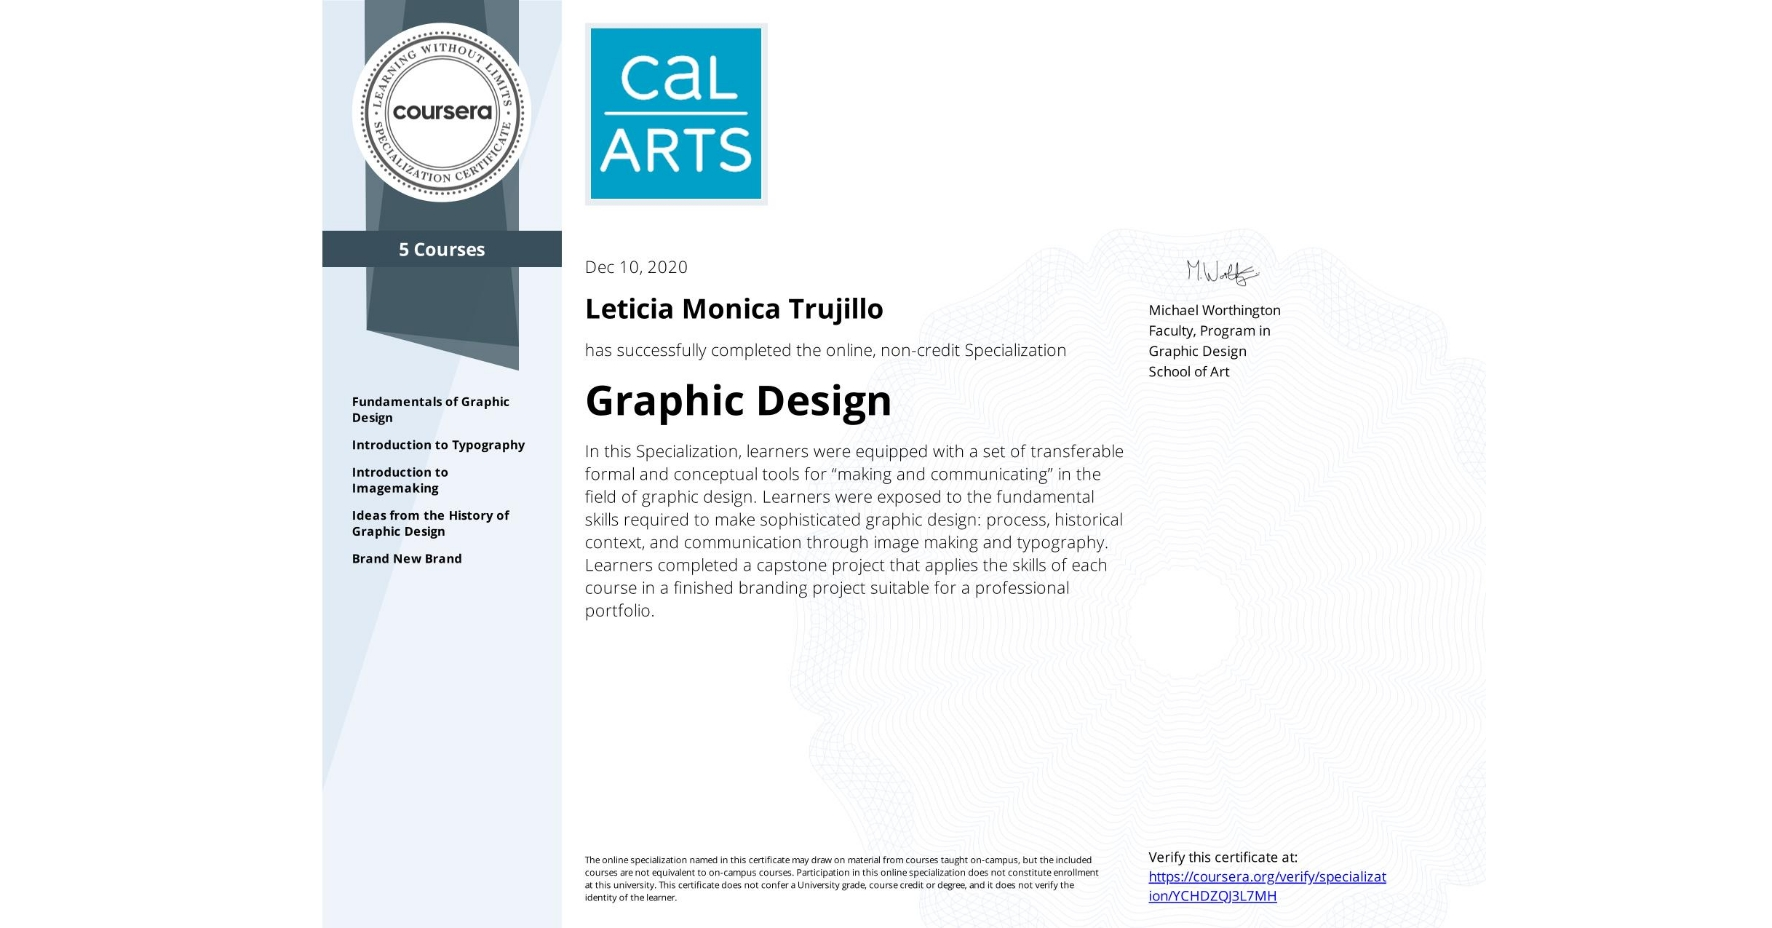 "View certificate for Leticia Monica Trujillo, Graphic Design, offered through Coursera. In this Specialization, learners were equipped with a set of transferable formal and conceptual tools for ""making and communicating"" in the field of graphic design. Learners were exposed to the fundamental skills required to make sophisticated graphic design: process, historical context, and communication through image making and typography. Learners completed a capstone project that applies the skills of each course in a finished branding project suitable for a professional portfolio."